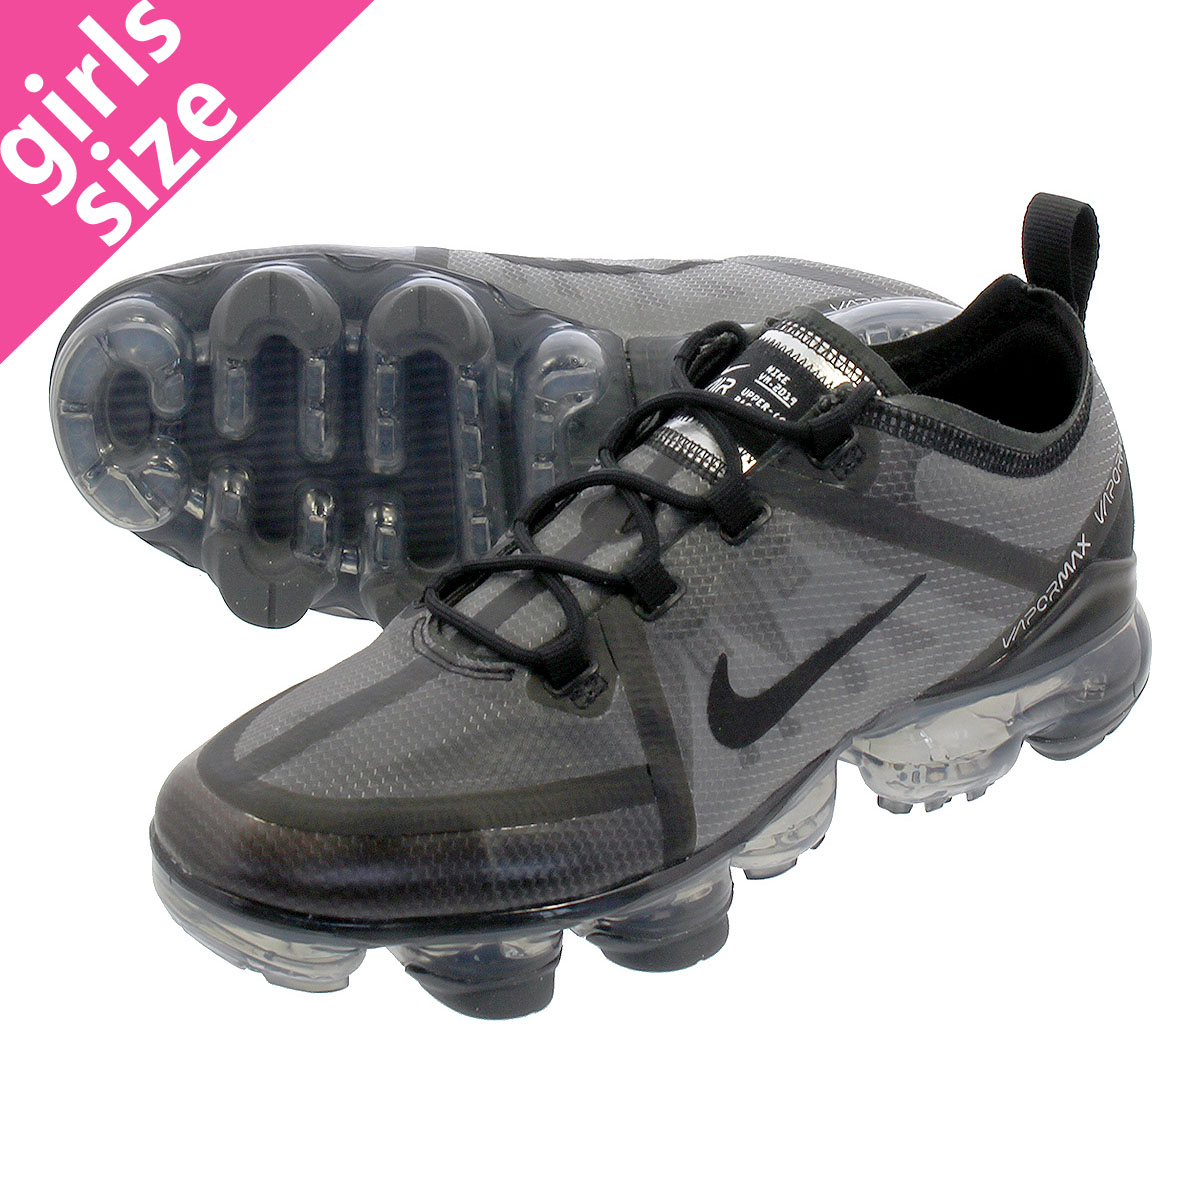 low priced 516c6 5874a NIKE AIR VAPORMAX 2019 GS Nike air vapor max 2019 GS BLACK BLACK BLACK ...